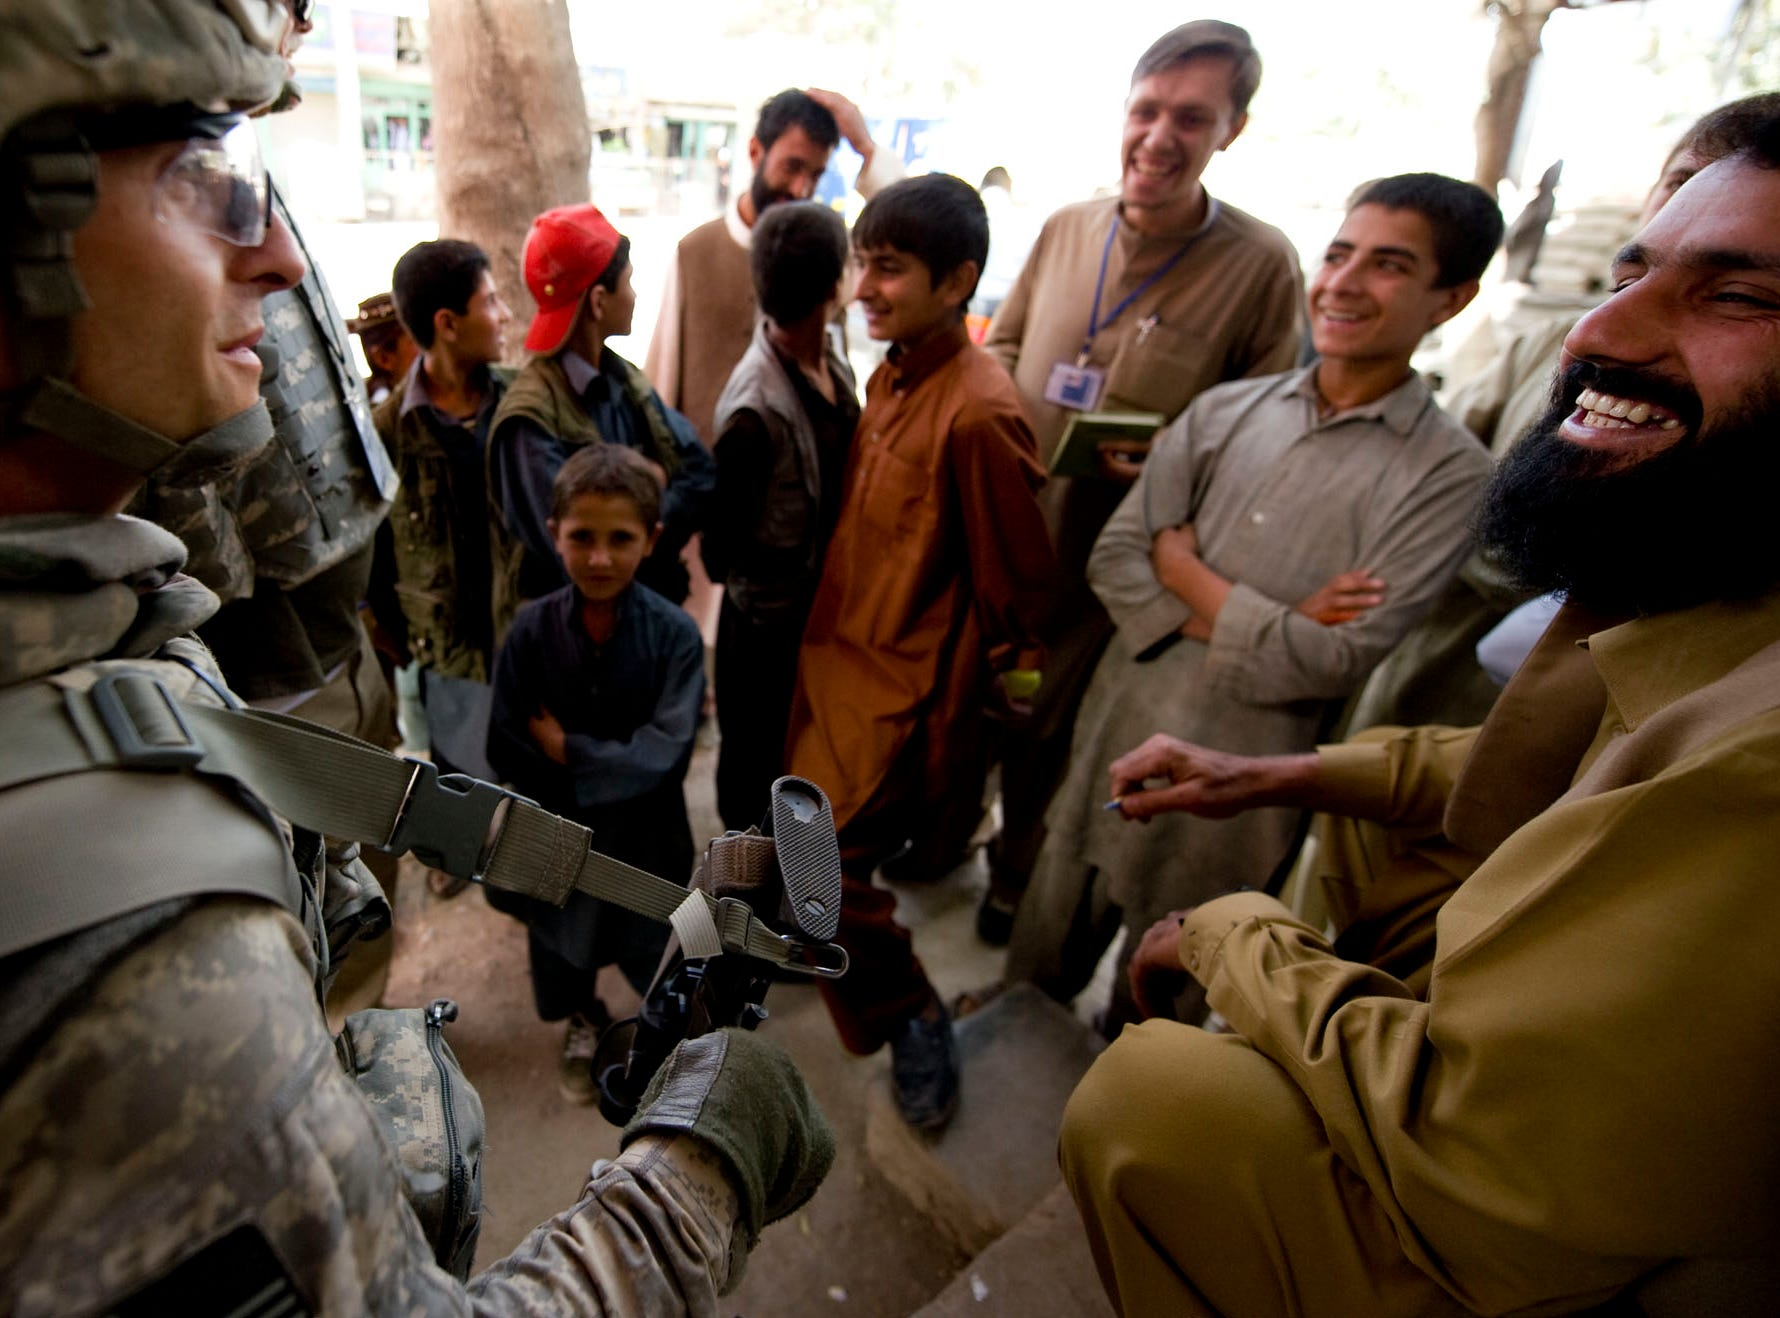 Vermont National Guard medic Sgt. Paul Jardine, 37, of Fair Haven, Vt., talks with a shopkeeper as kids gather around a security checkpoint to joke and talk to him during a raid of a suspected weapons and IED stash at a building in downtown Gardez in Paktia Province, Afghanistan, Friday morning, September 17, 2010.